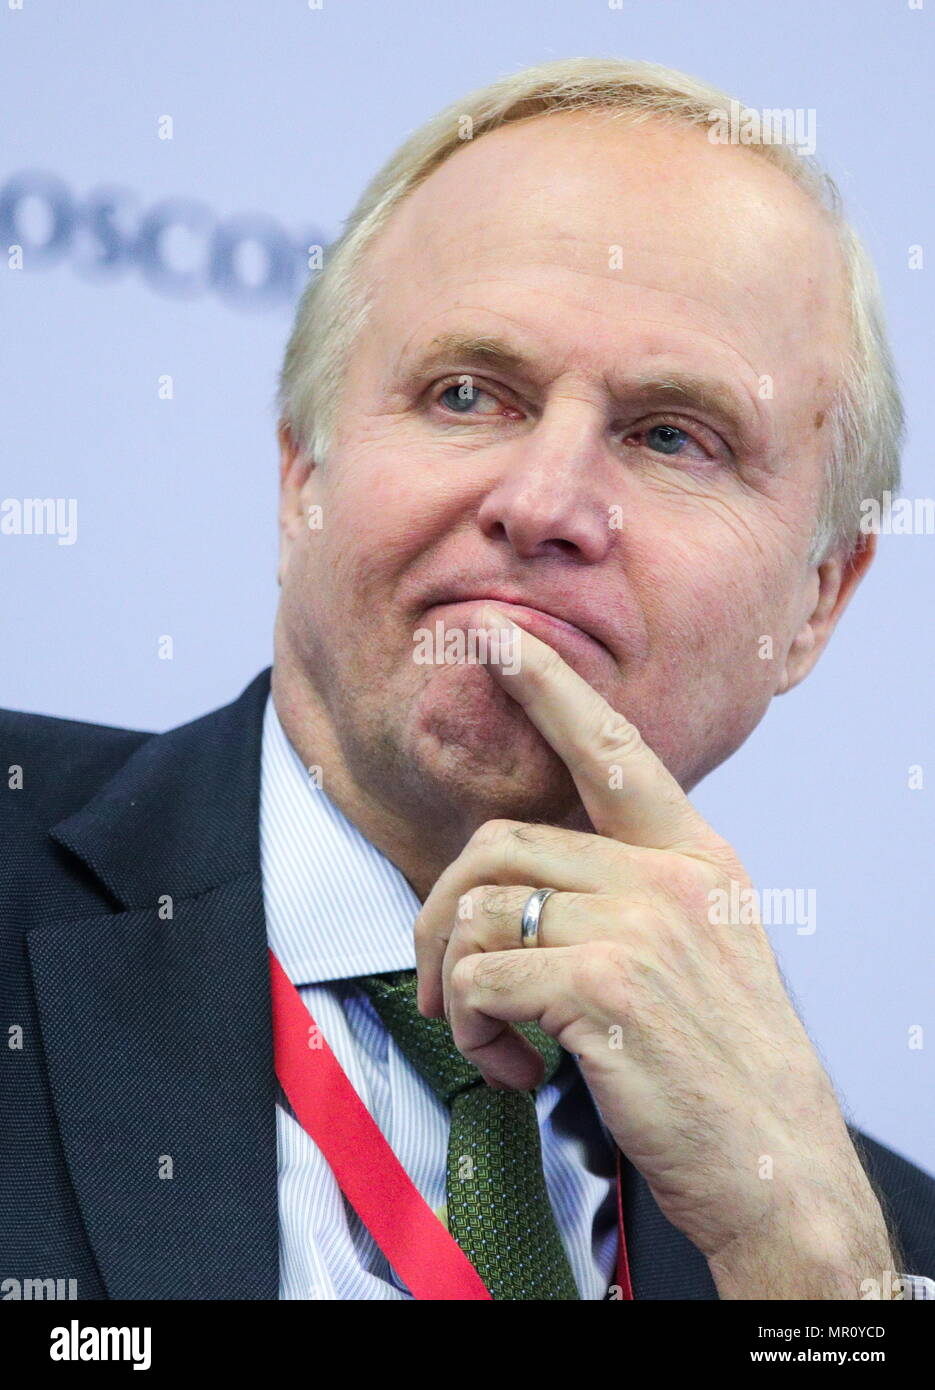 St Petersburg, Russia. 25th May, 2018. ST PETERSBURG, RUSSIA - MAY 25, 2018: BP CEO Robert Dudley at a session titled 'Energy Panel' as part of the 2018 St Petersburg International Economic Forum at the ExpoForum Convention and Exhibition Centre. Sergei Bobylev/TASS Host Photo Agency Credit: ITAR-TASS News Agency/Alamy Live News - Stock Image